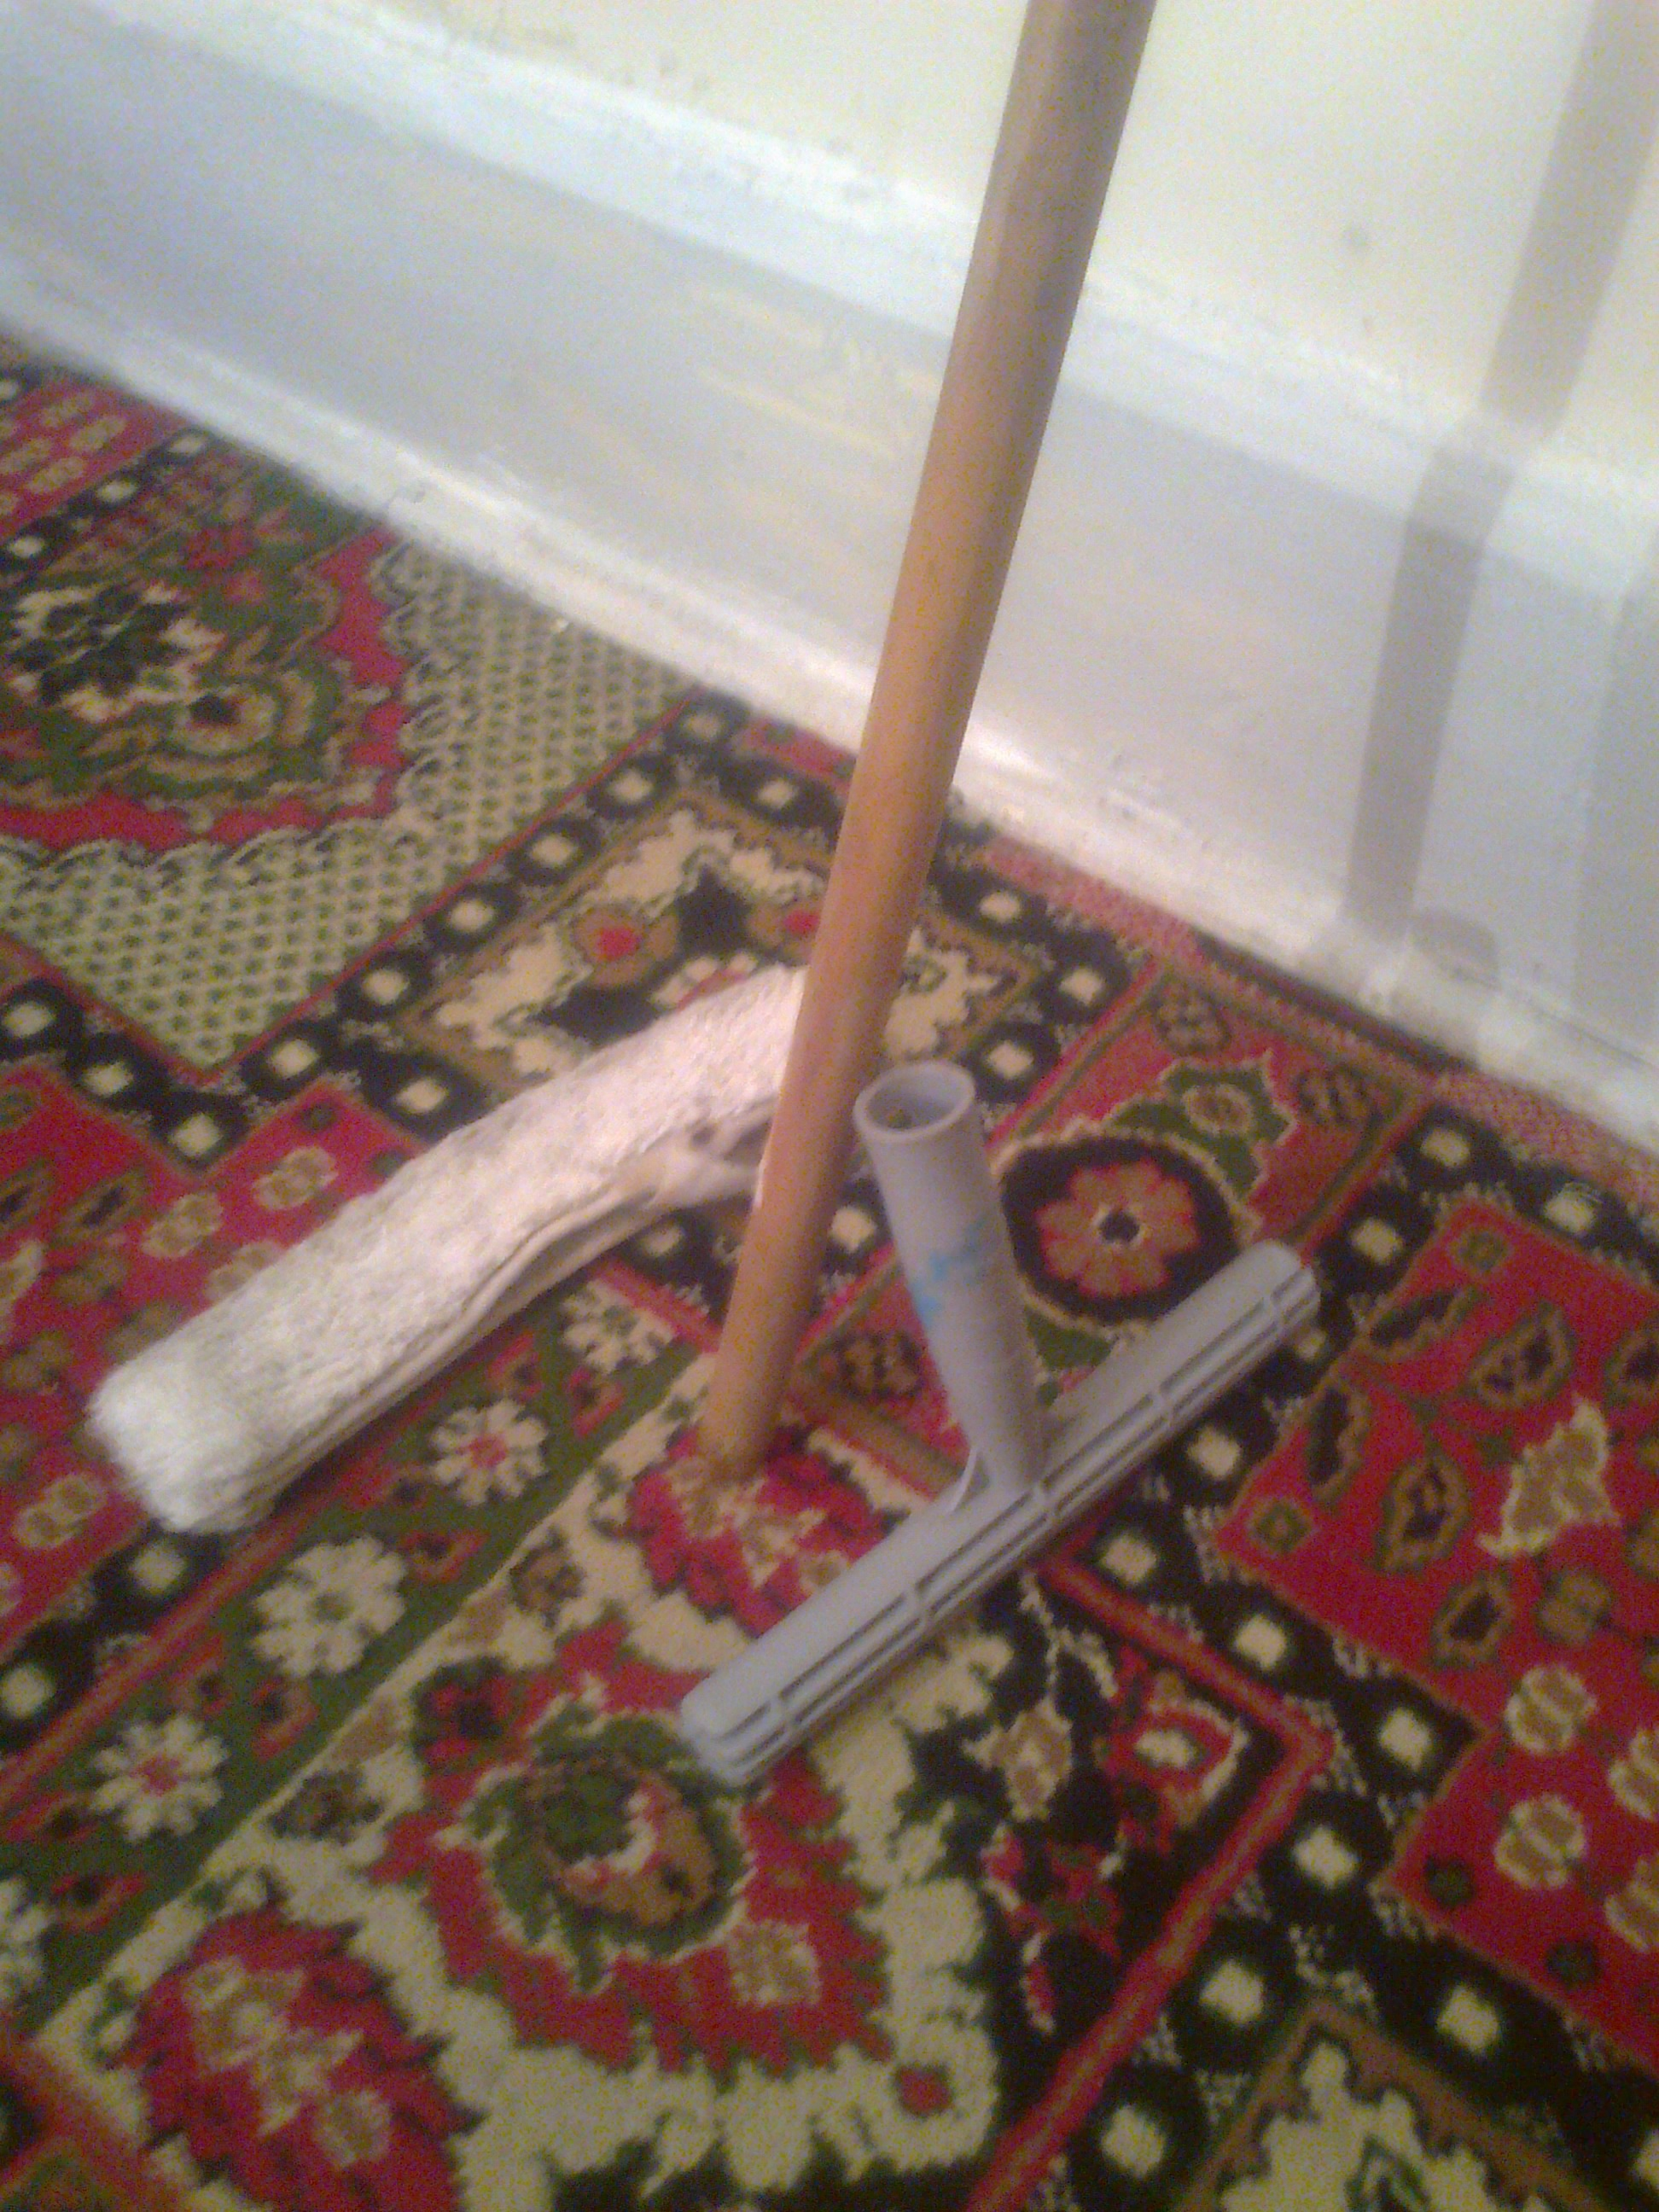 ways to clean carpet without machine